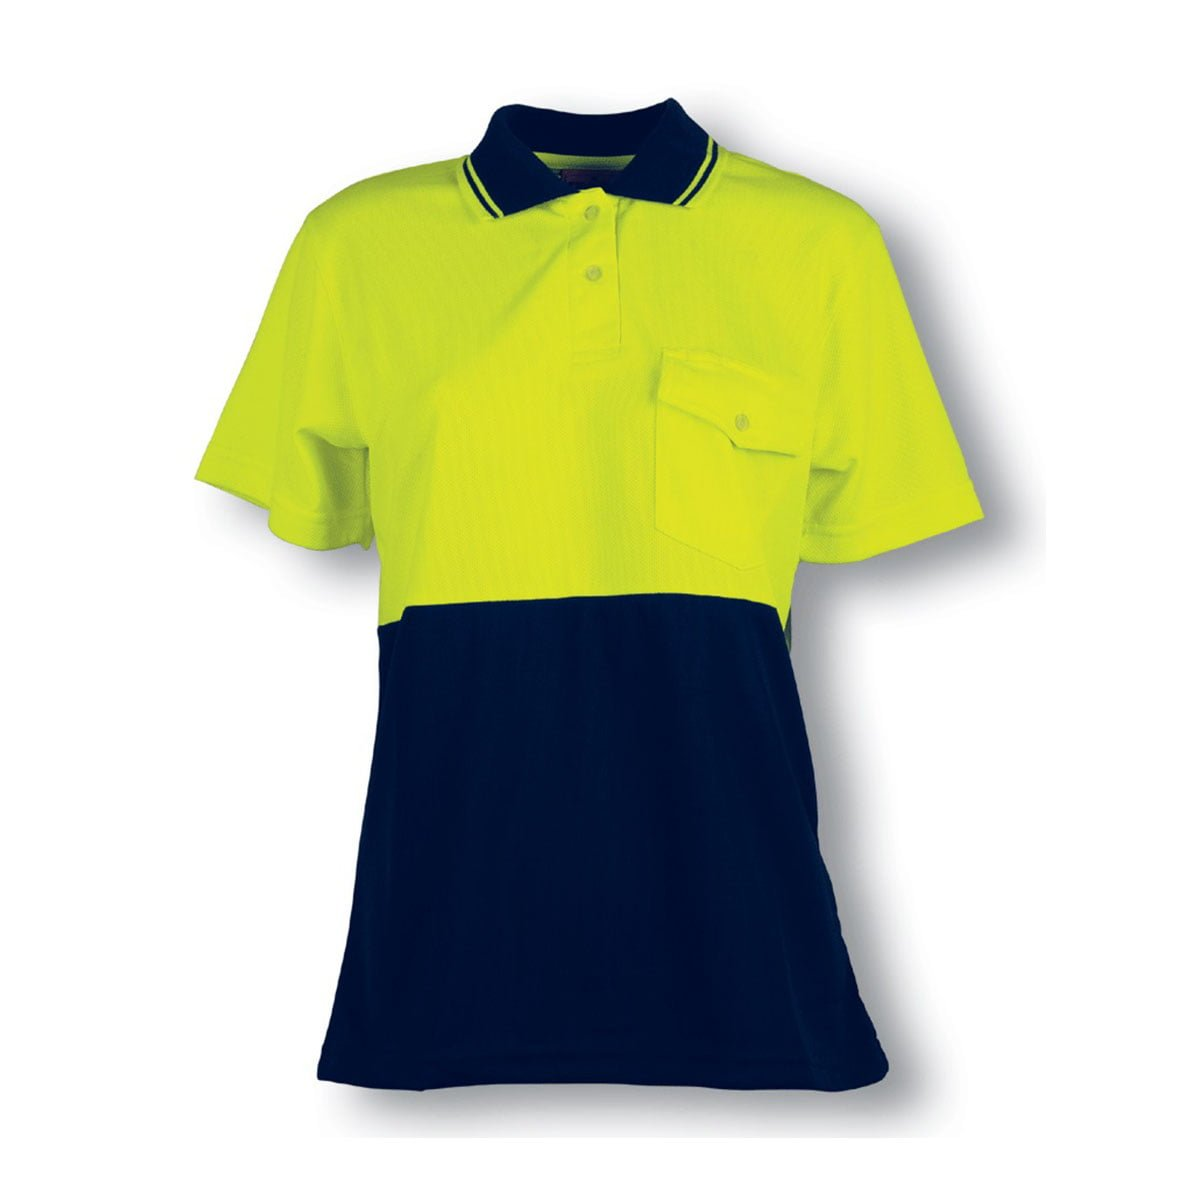 LADIES HI-VIS SAFETY POLO-Lime / Navy